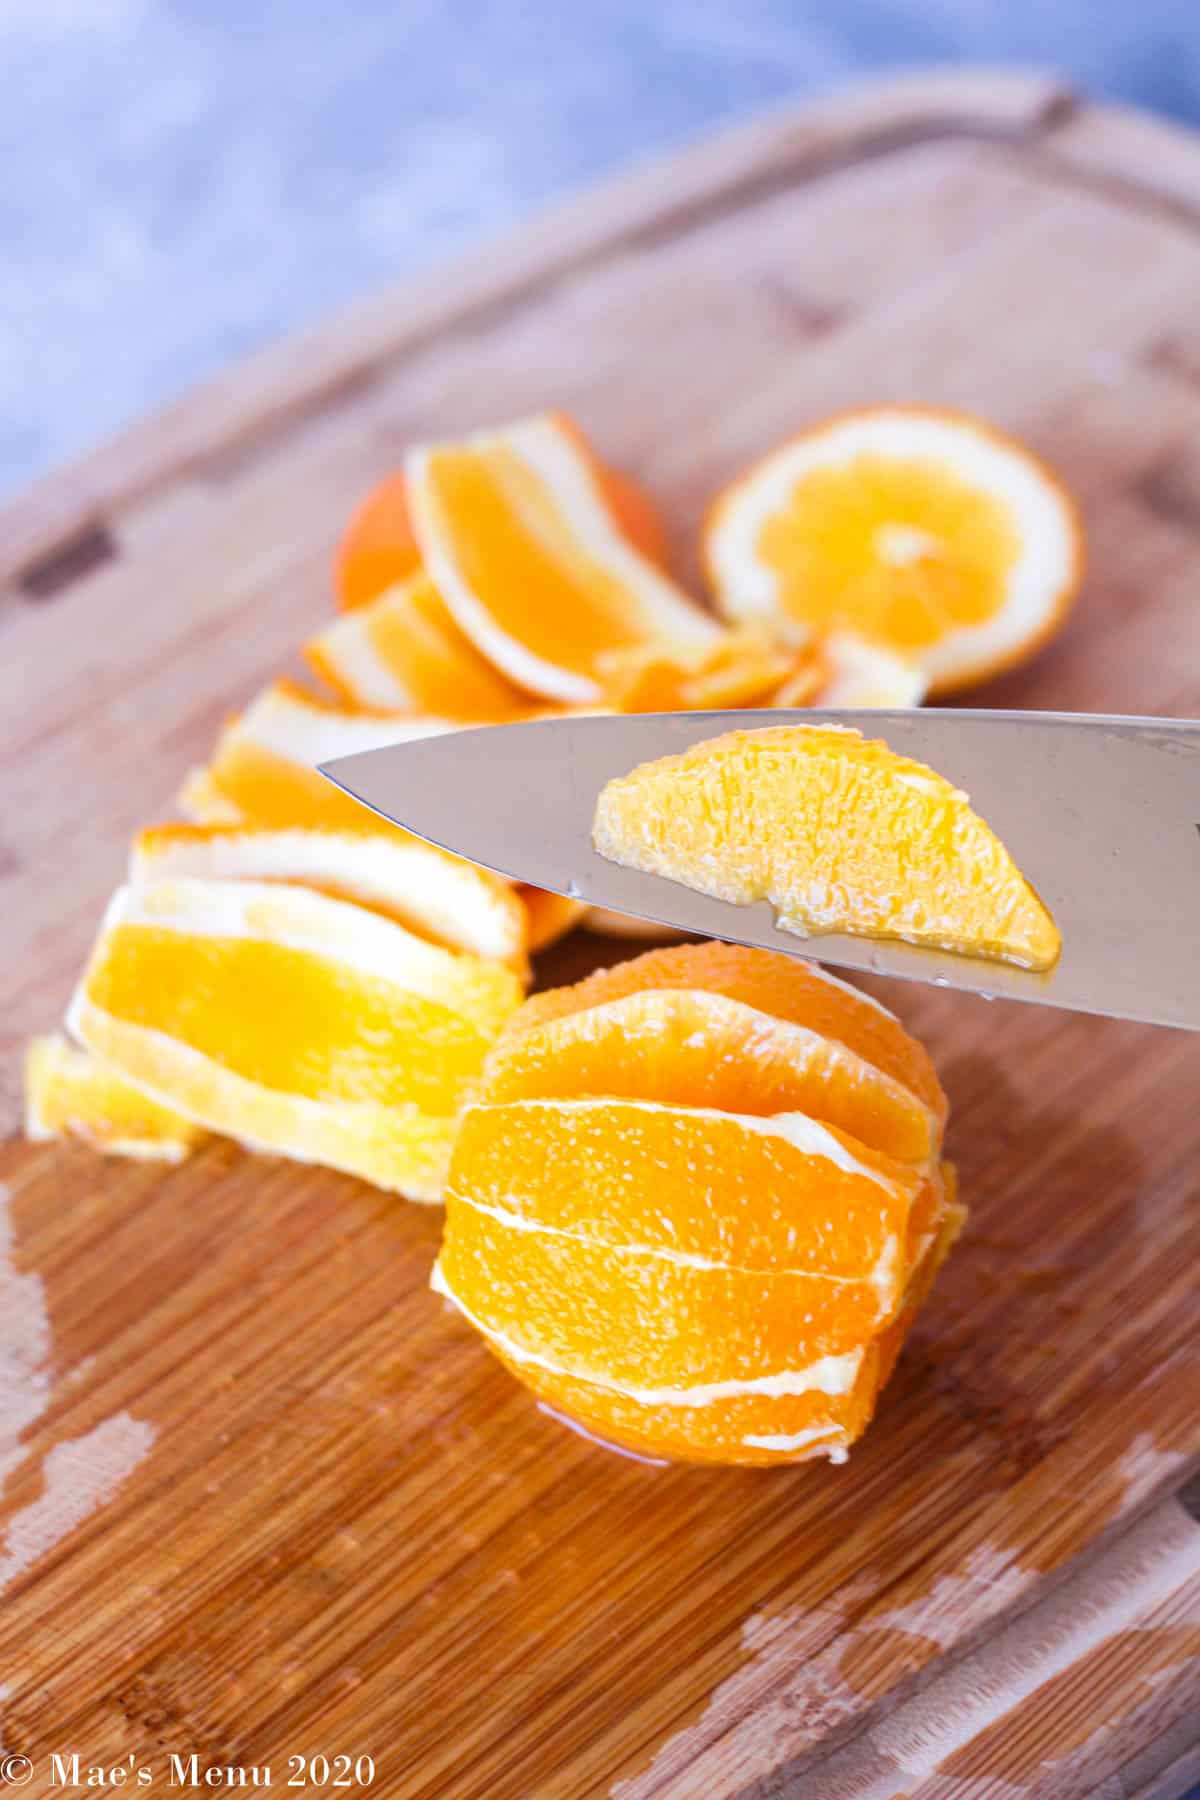 A knife pulling one of the orange segments out of the fruit